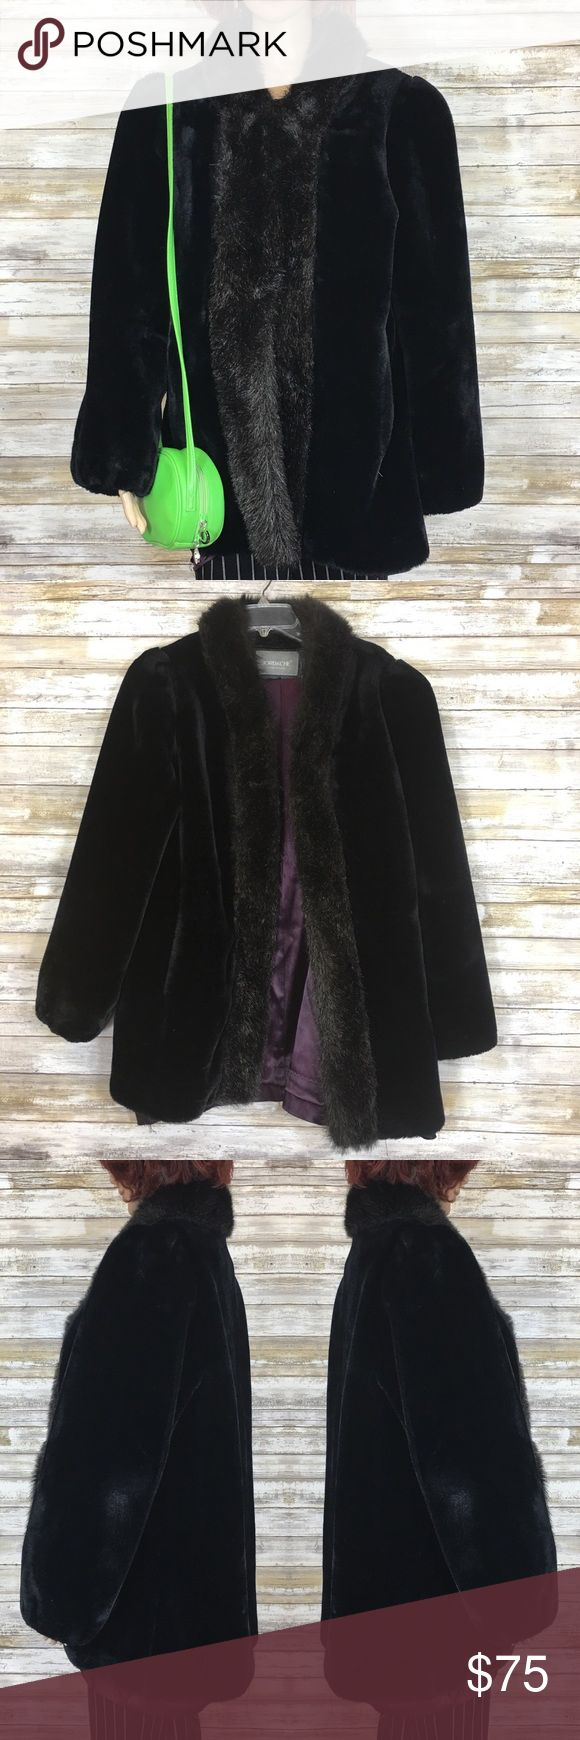 """Vintage 80's 90's Jordache Faux Fur Jacket Wow! What a find! Vintage 80's or 90's Jordache faux fur jacket. Has two furrier hooks that close and it has pockets.  Size 12 Made in USA  Material: acetate and polyester  Fully lined with purple satiny material, material has come unattached at the bottom hem.  Condition: a couple white spots, little matted spots (very minor) and a slight cigarette odor. Measurements (flat): Armpit to armpit: 24.5"""" Waist: 25"""" Bottom hem: 28"""" Length: 27"""" Sleeve: 26""""…"""